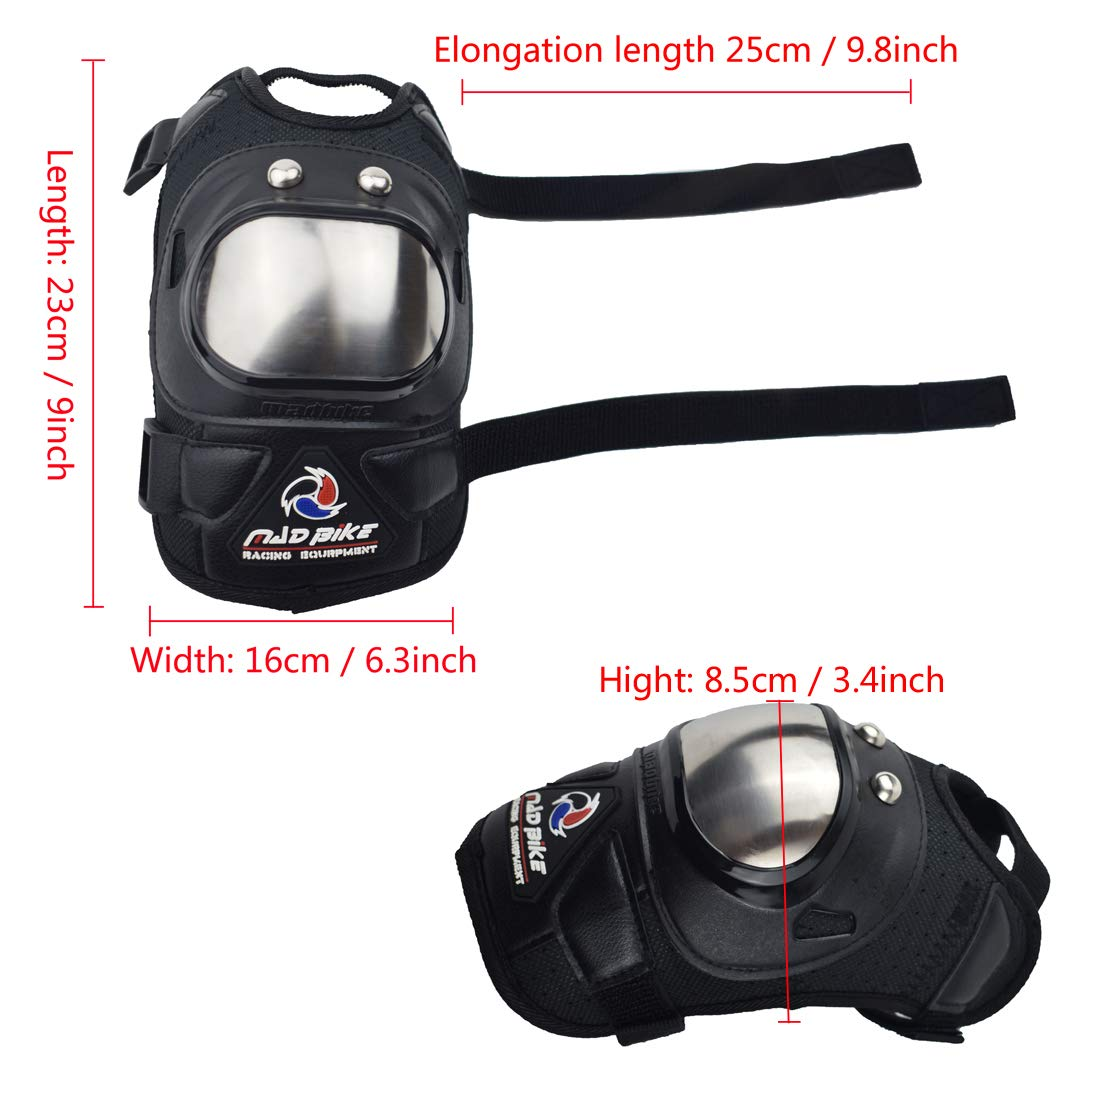 Madbike Motocross knee elbow protection with stainless steel protector